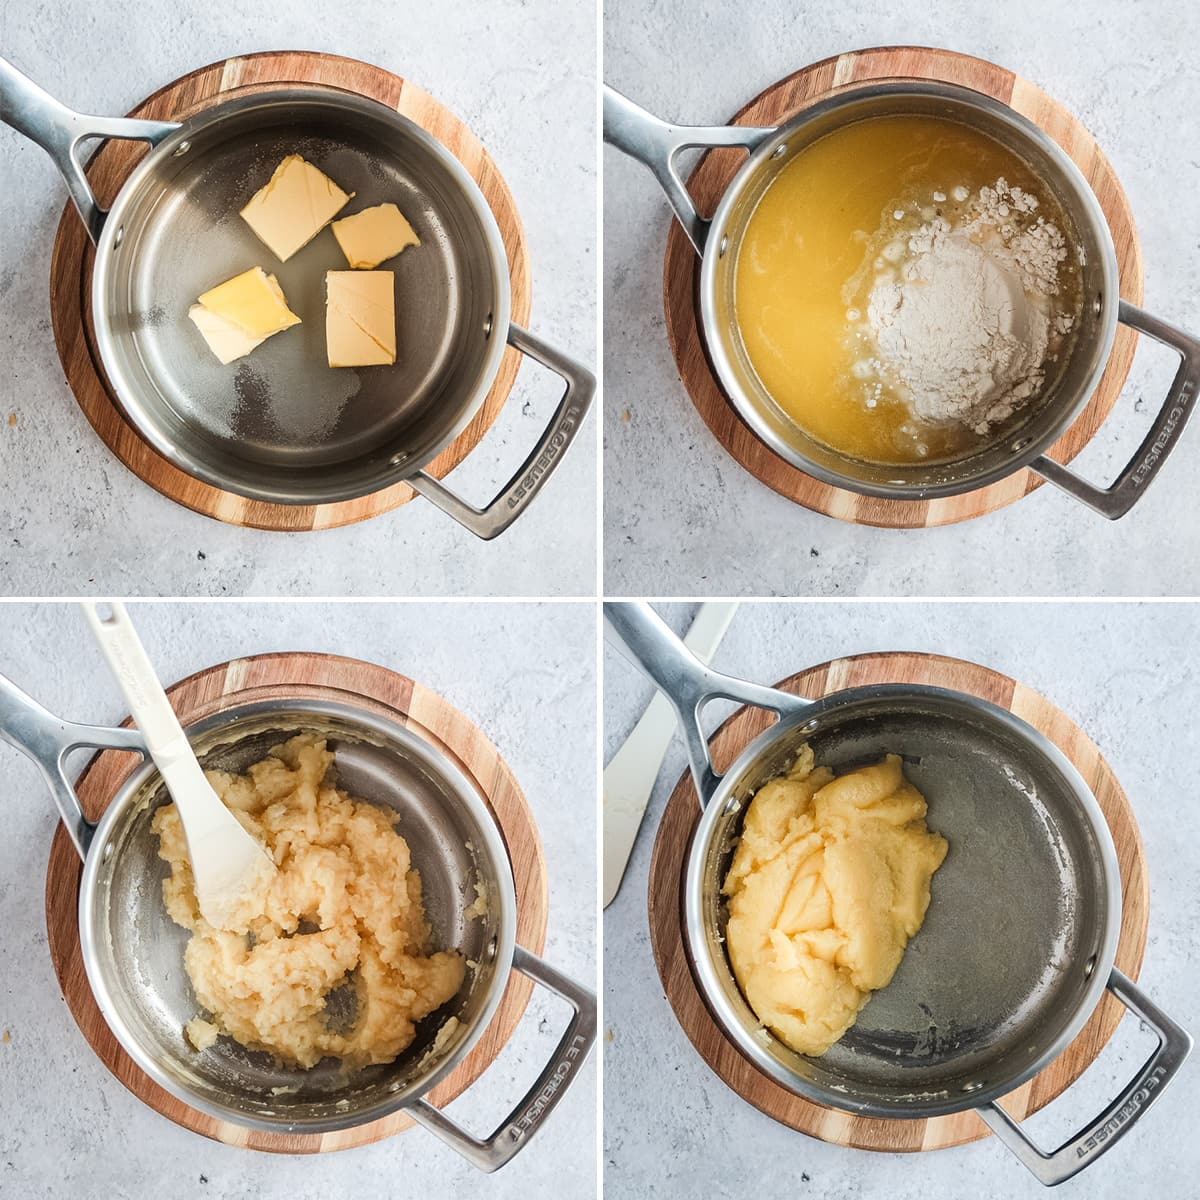 Making choux pastry: step 1 to 4